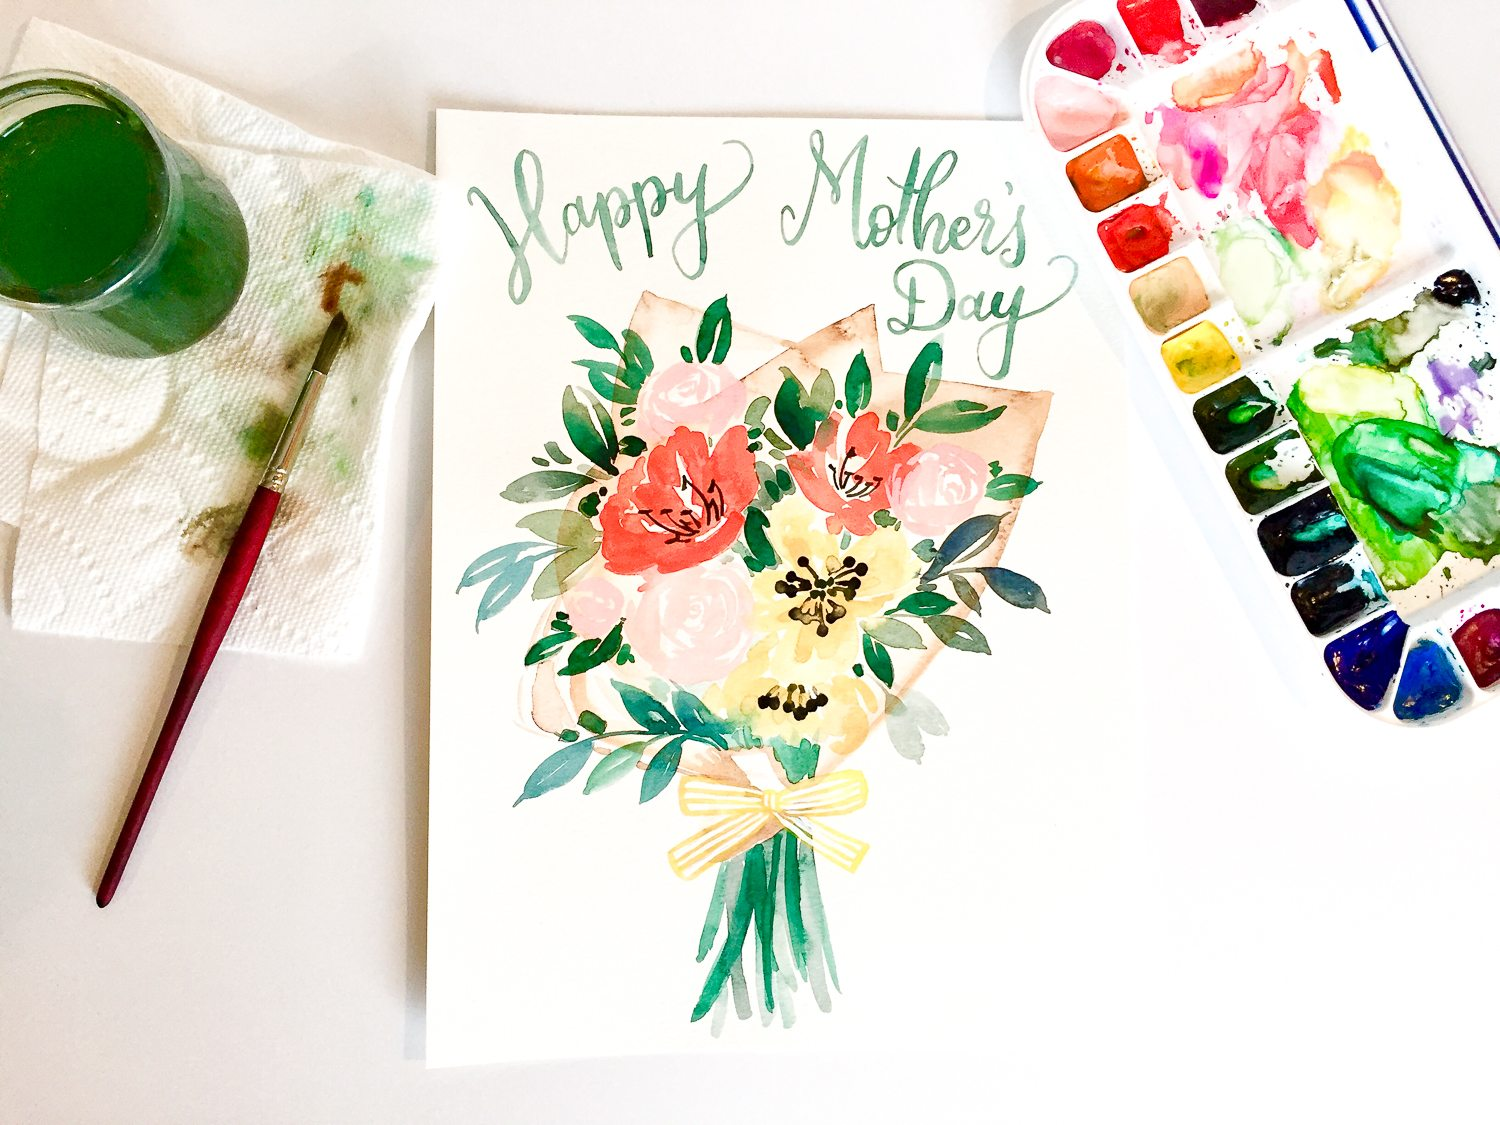 photo regarding Happy Mothers Day Printable Card titled Content Moms Working day Printable Card inside of Floral Watercolor